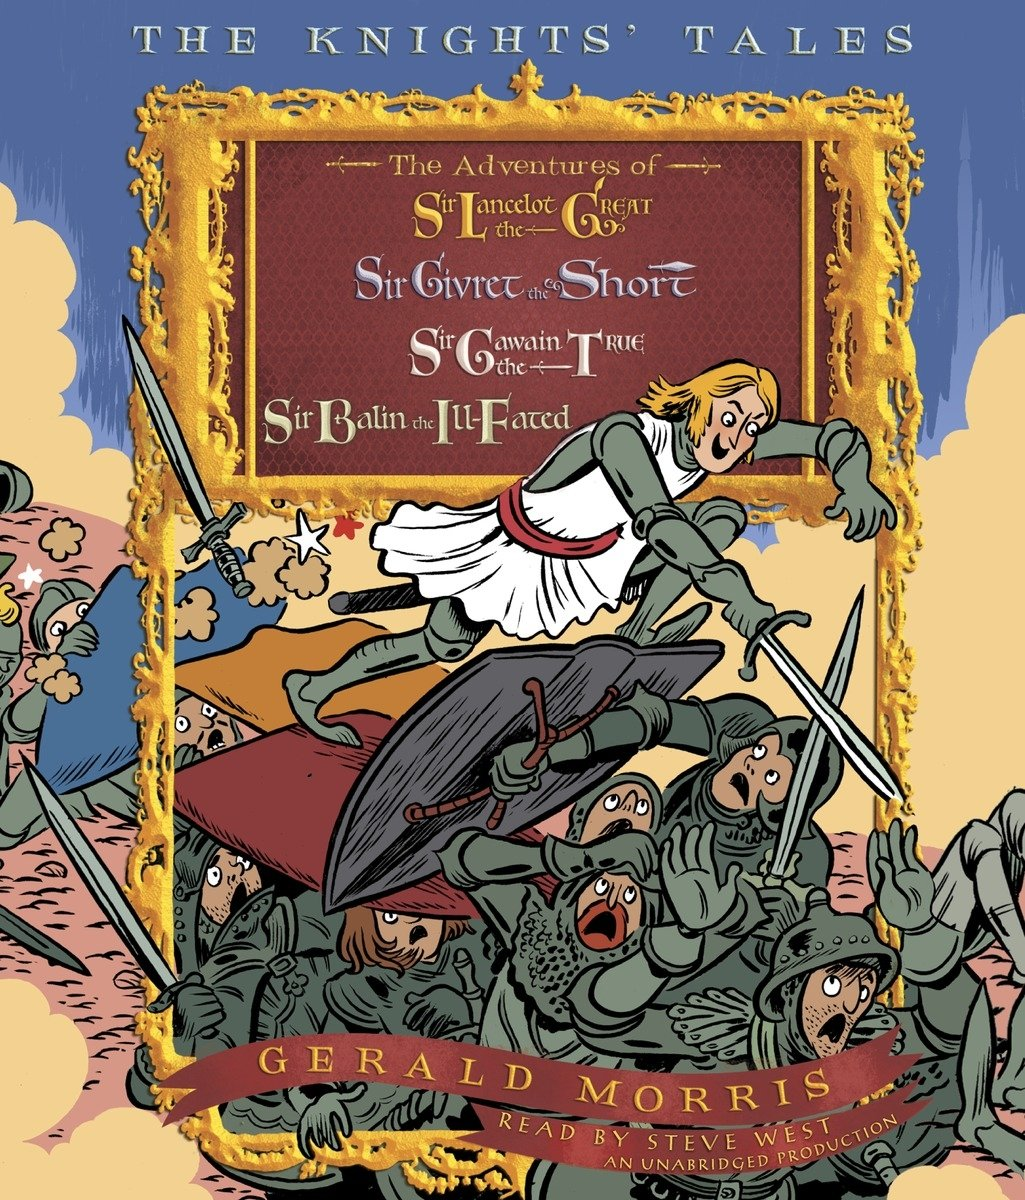 The Adventures of Sir Gawain the True (The Knights Tales, Book 3)